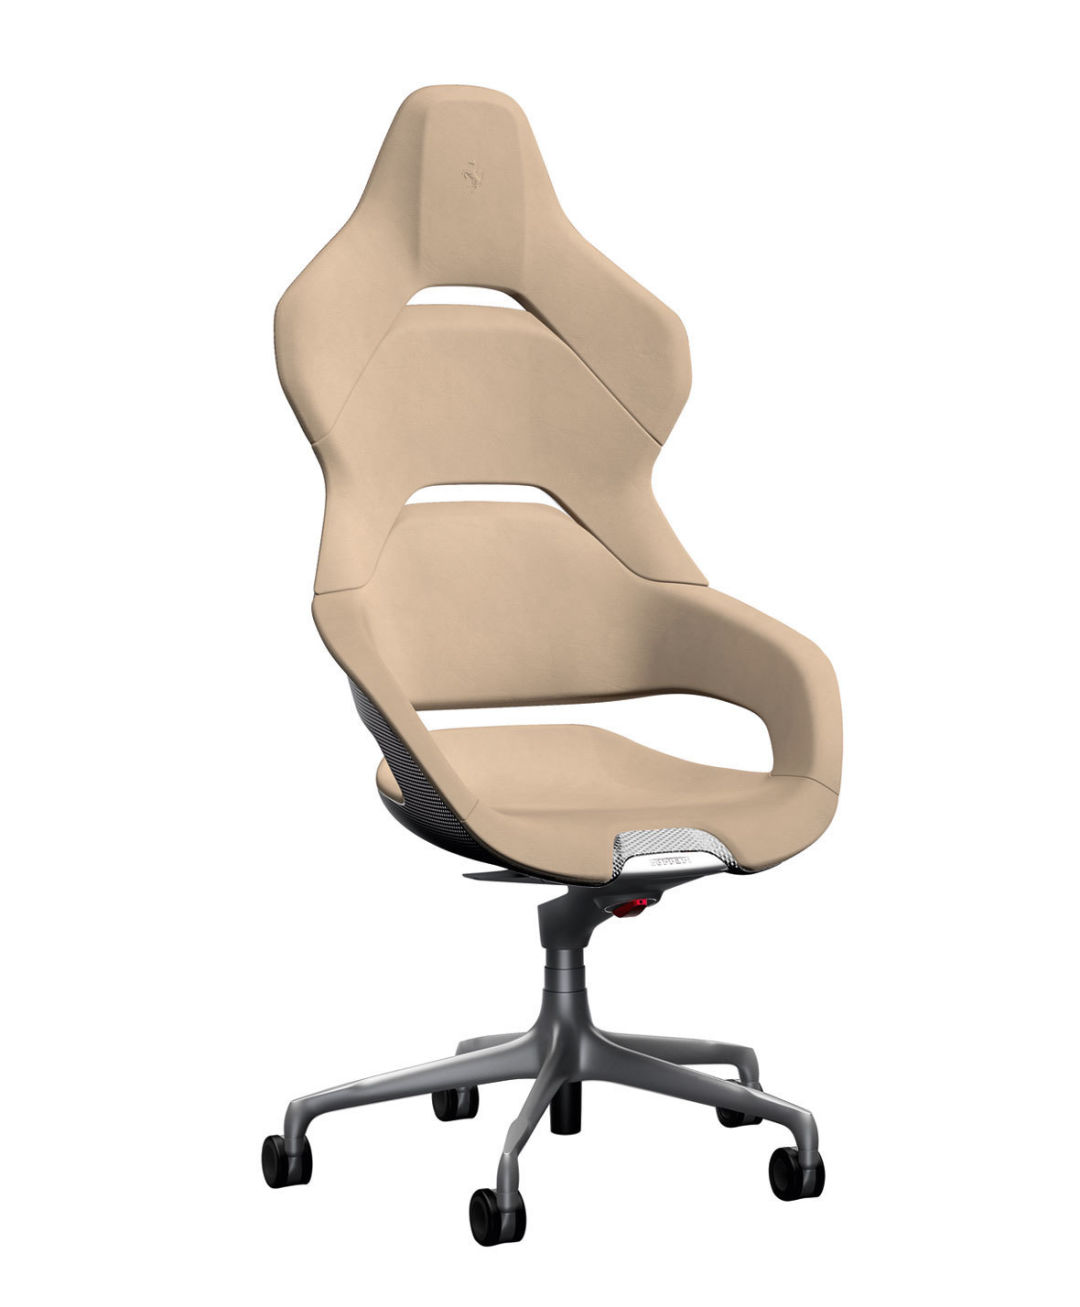 president office furniture. Ferrari President 2 Ineditasideee Btaq5q Office Furniture :